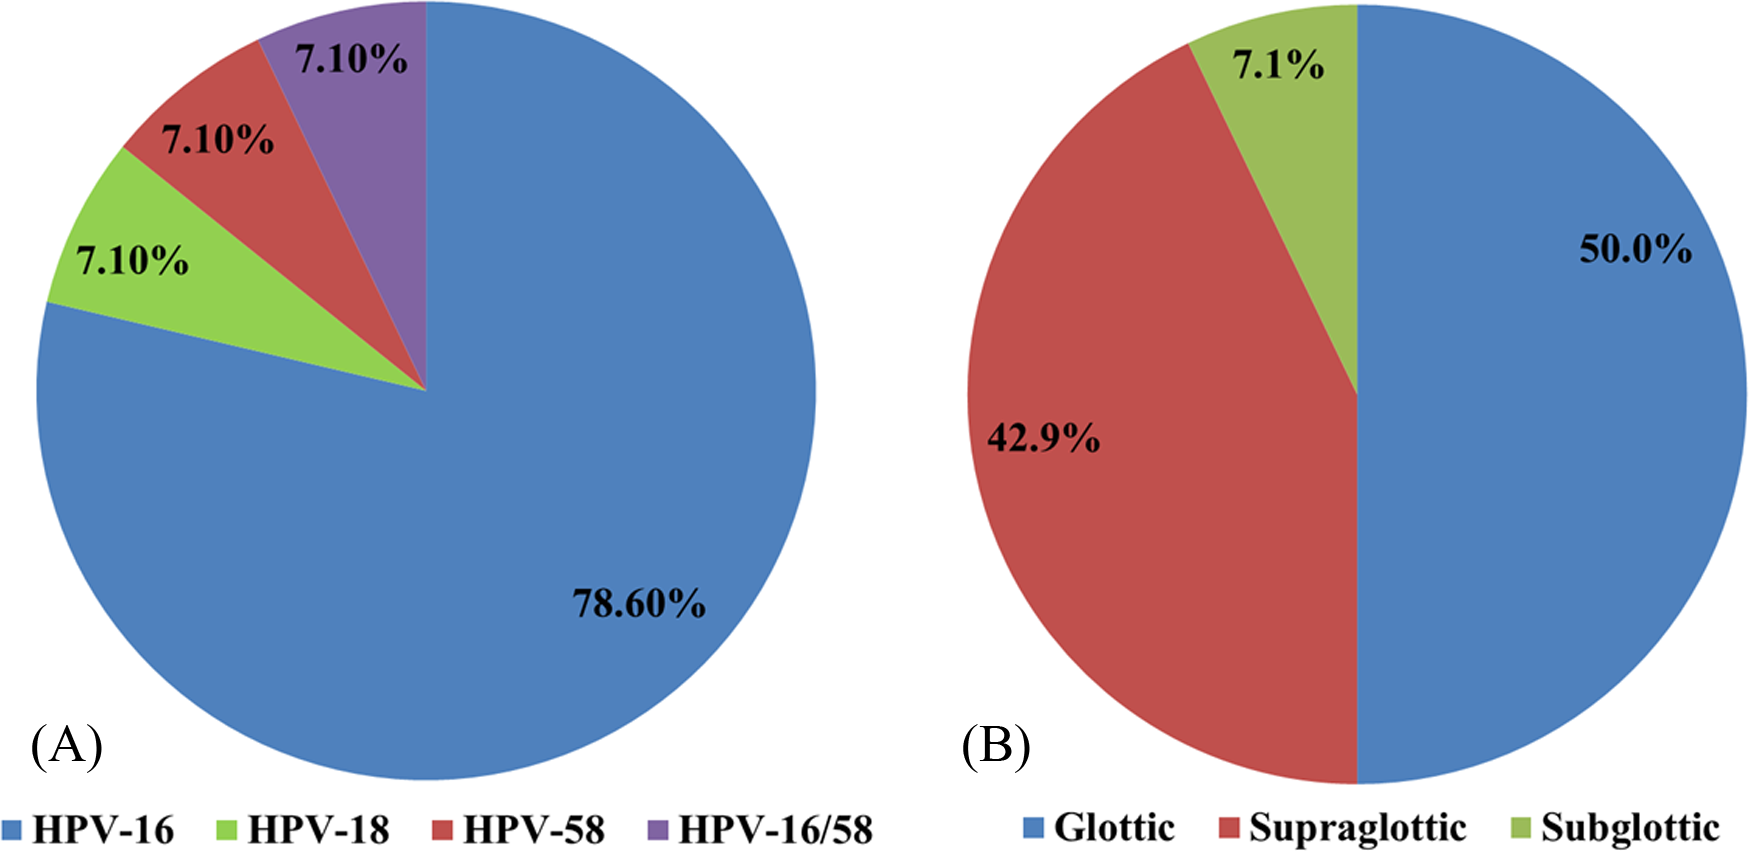 intraductal papilloma with dcis treatment hpv vir priznaky